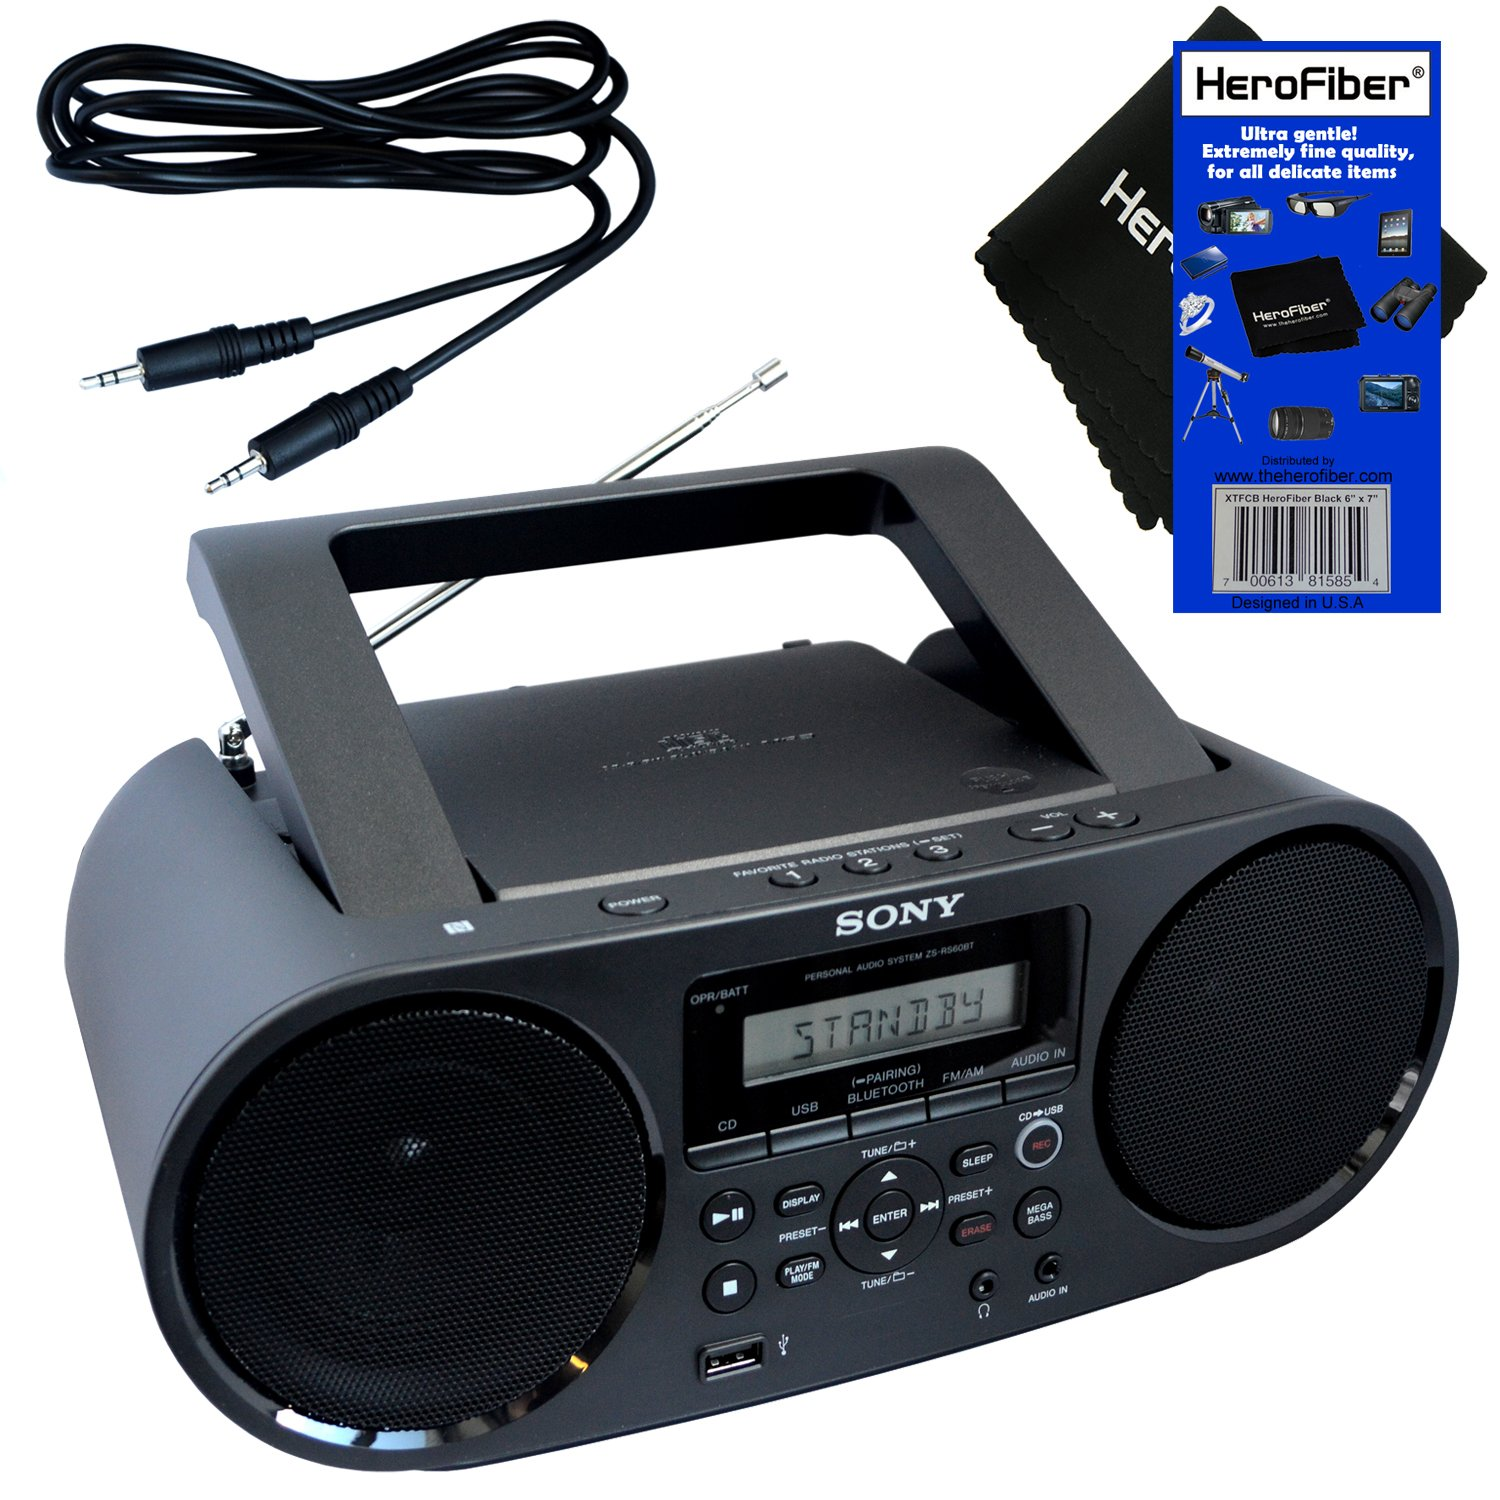 Sony Bluetooth & NFC (Near Field Communications) MP3 CD/CD-R/RW Portable MEGA BASS Stereo Boombox with Digital Radio AM/FM tuner & USB Playback + Auxiliary Cable & HeroFiber Gentle Cleaning Cloth by HeroFiber